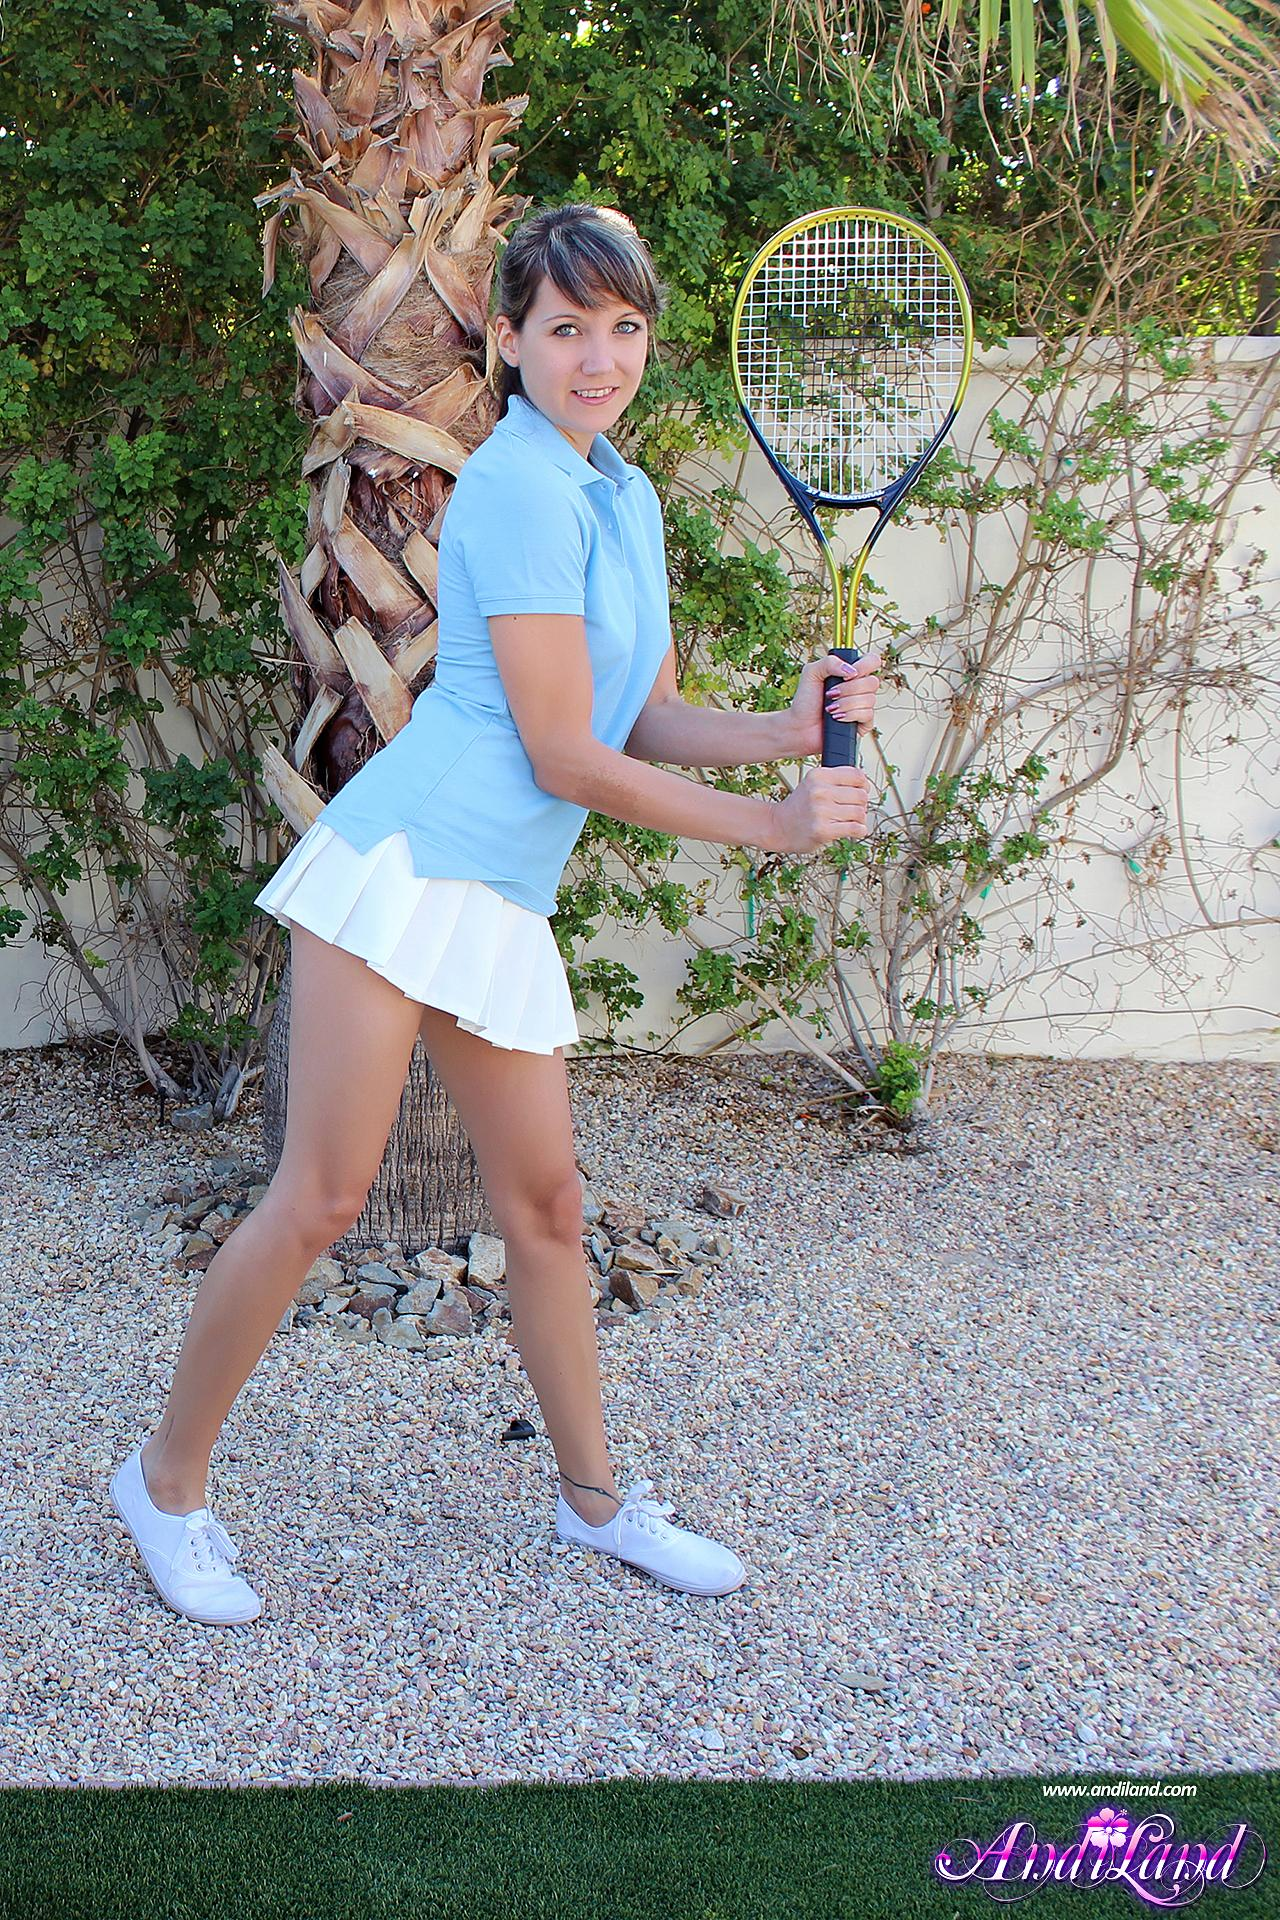 Agree, show nude lawn tennis videos remarkable